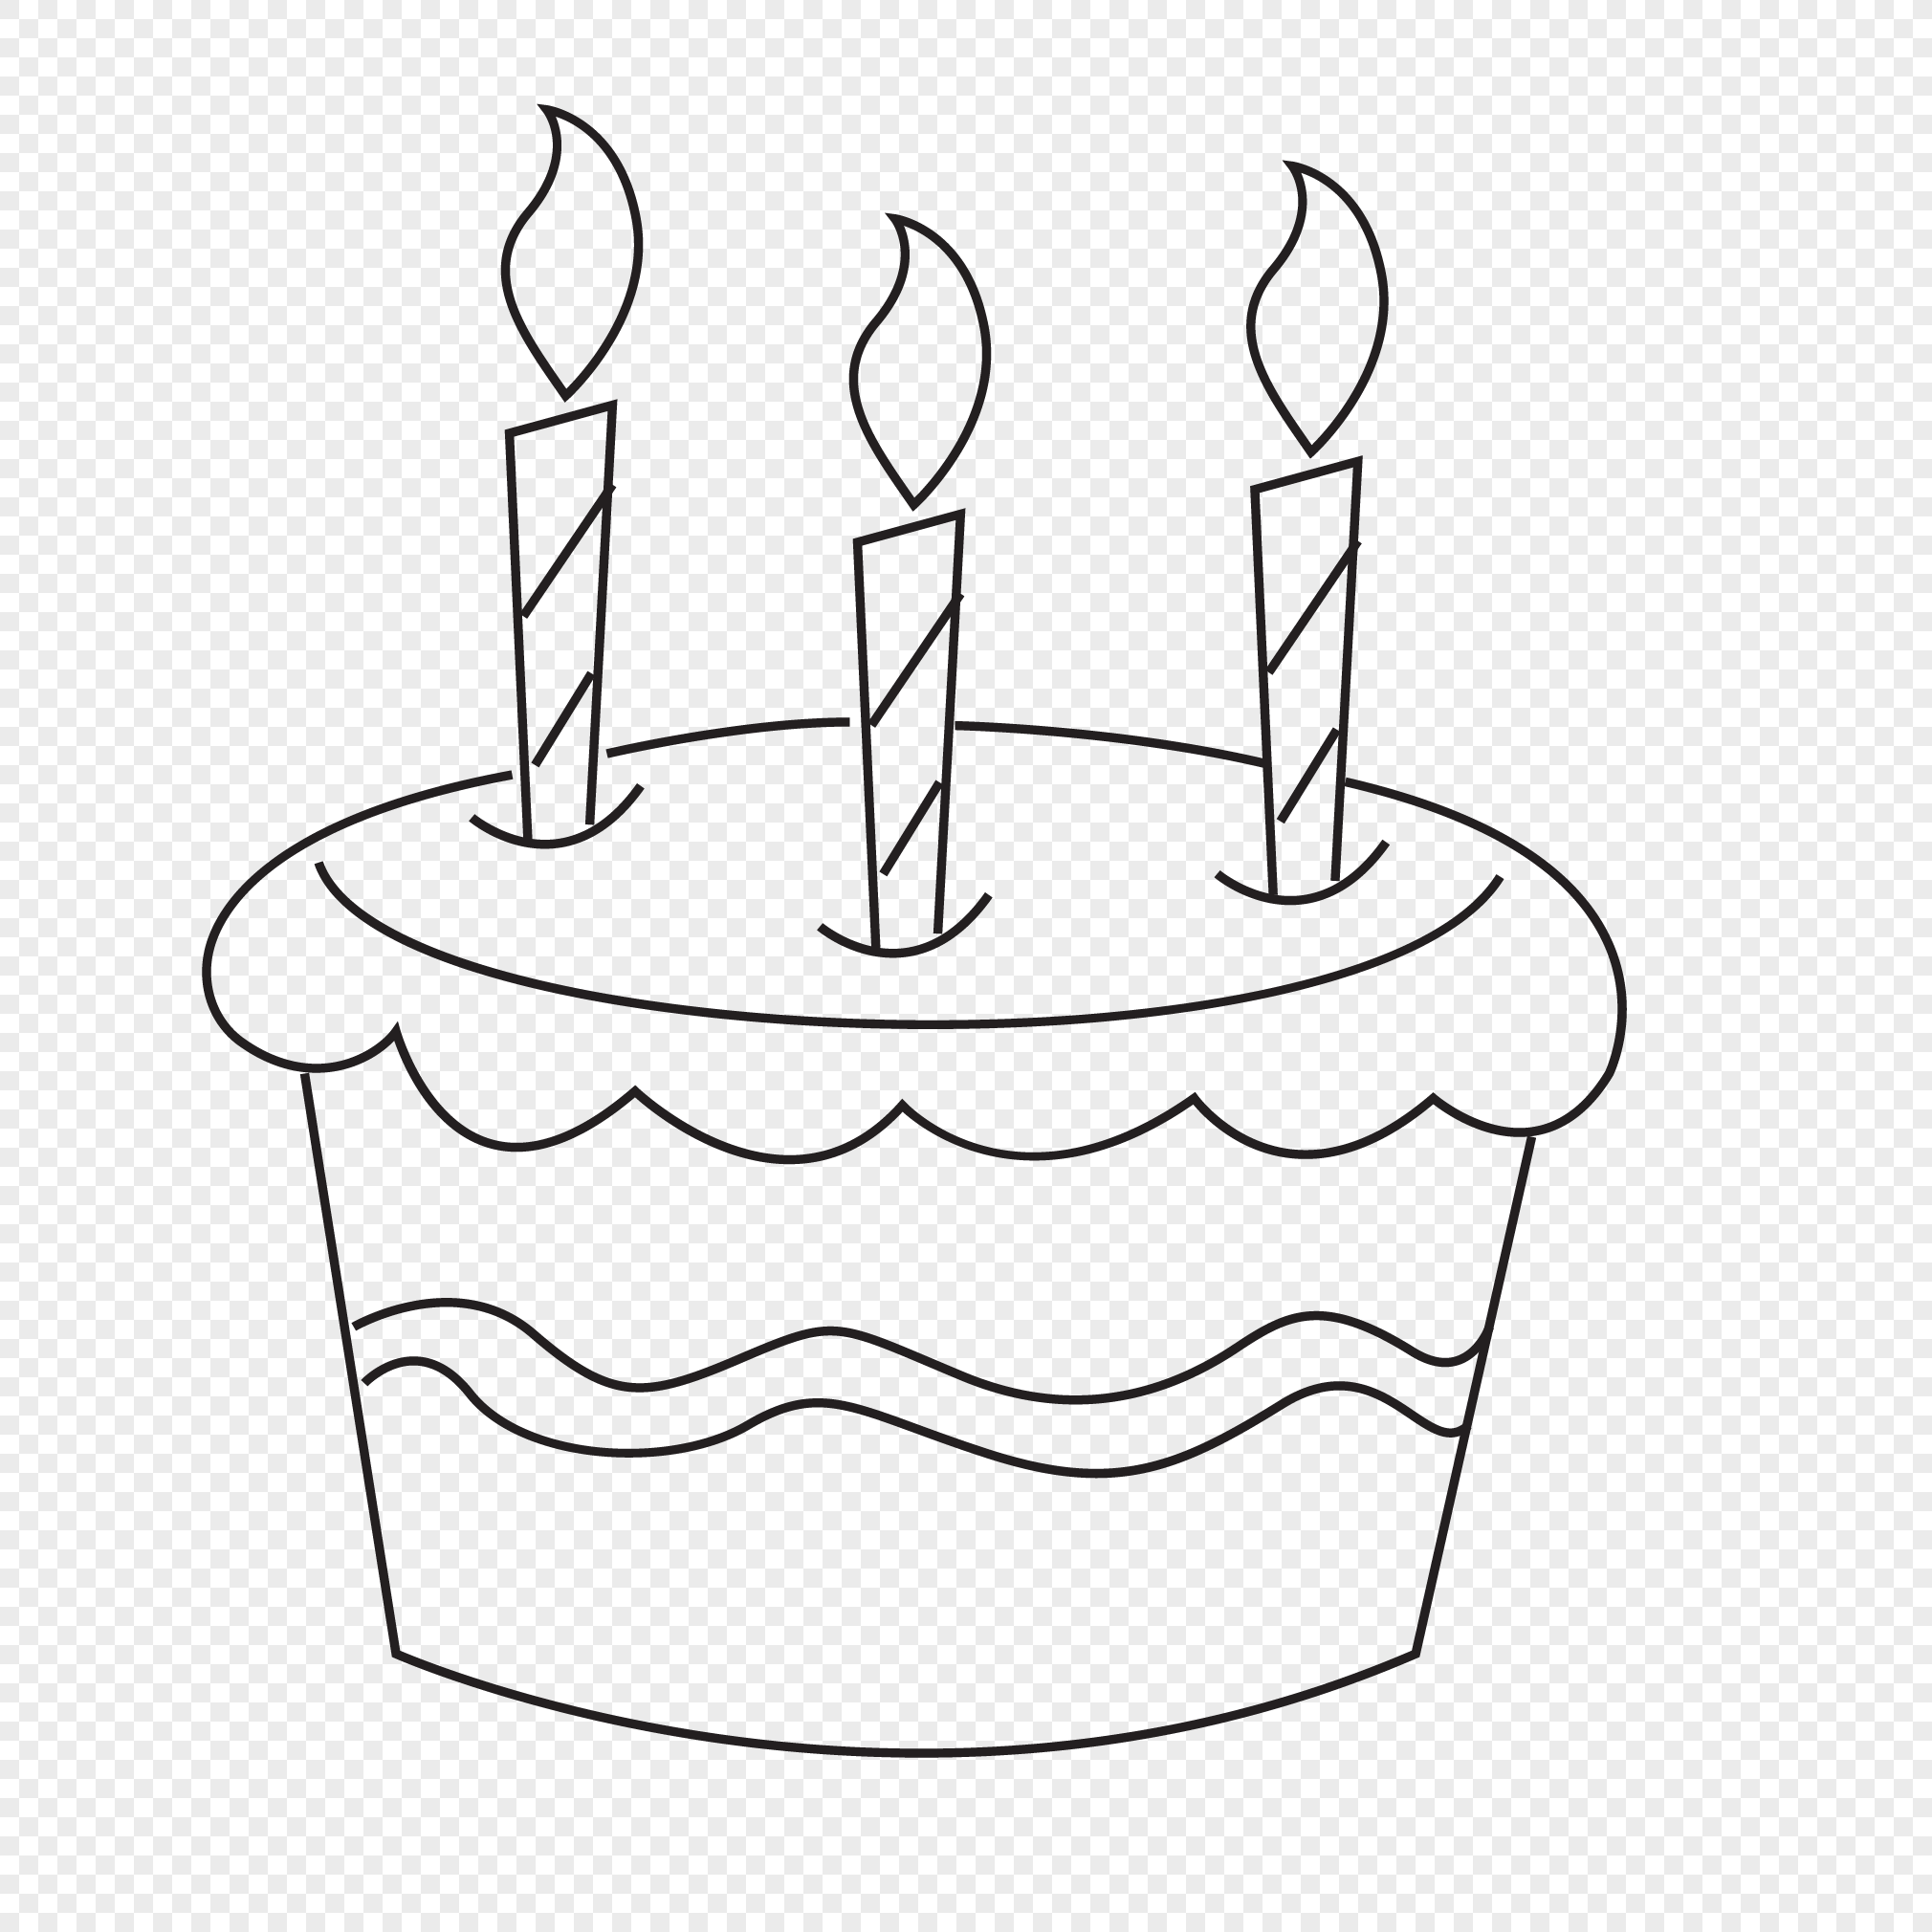 Line Drawing Birthday Cake Png Image Picture Free Download